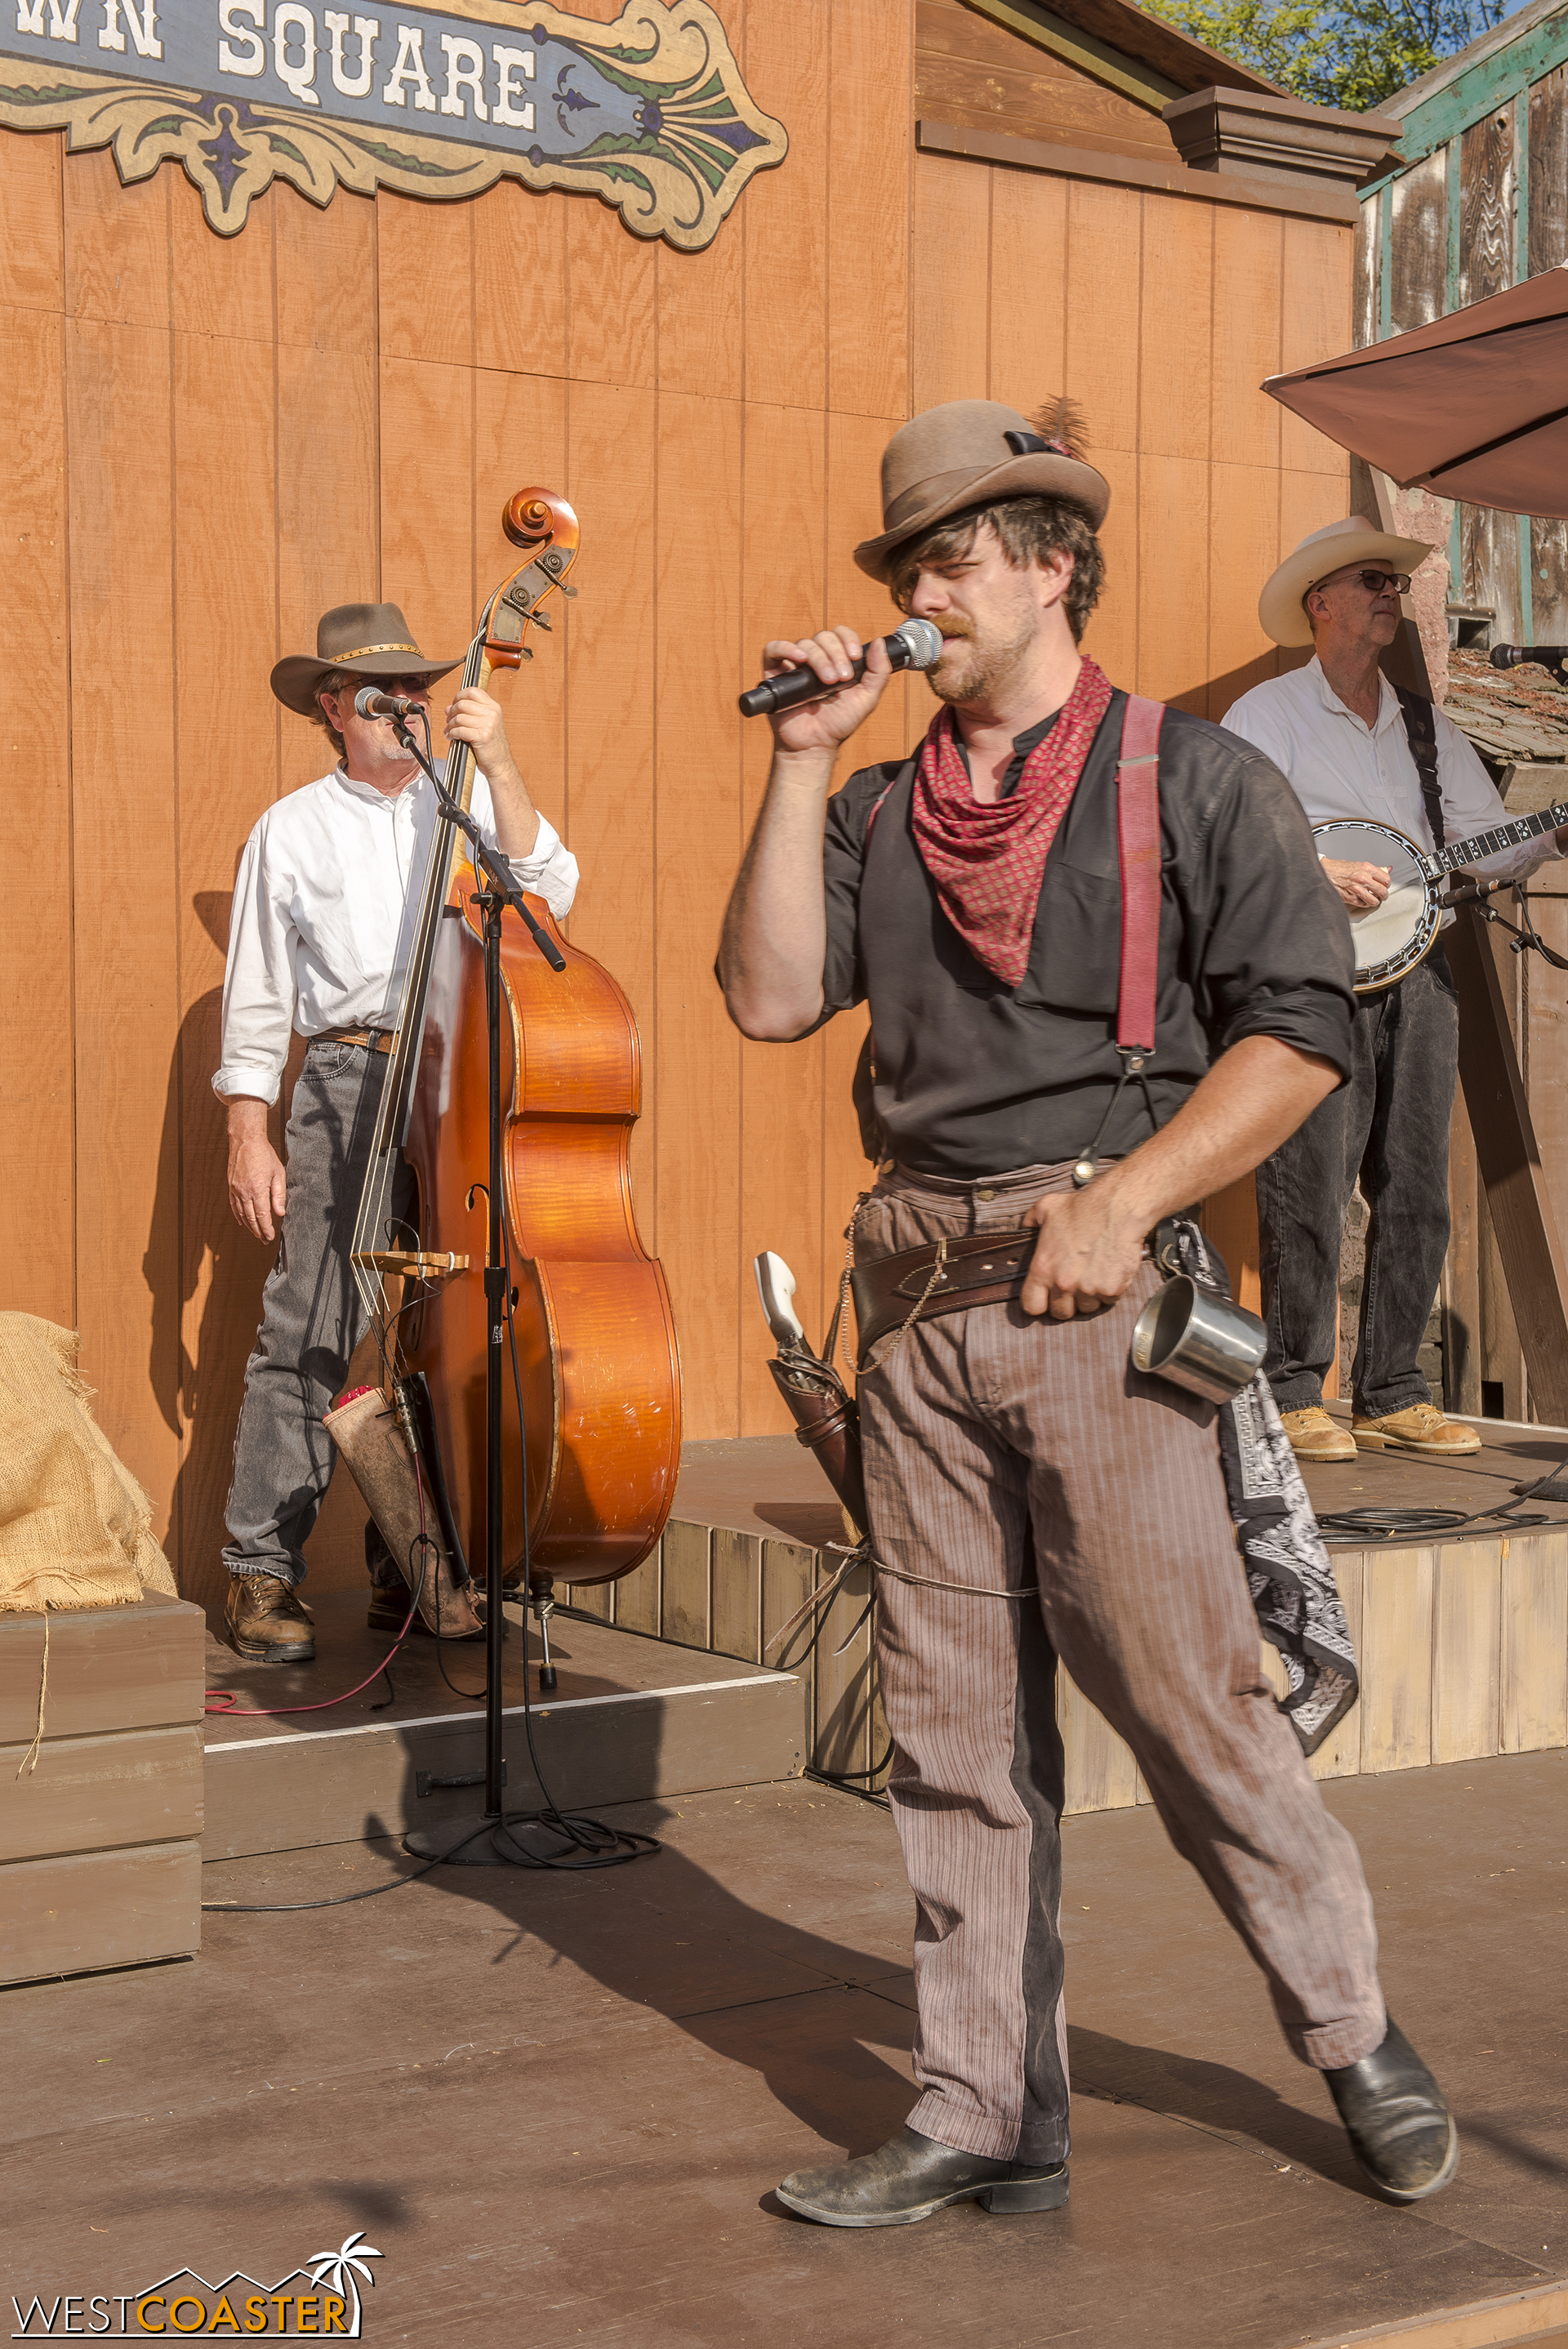 Just as he did last year, Scruff explains how to do each of several dances that guests and actors partake in for the hoedown.